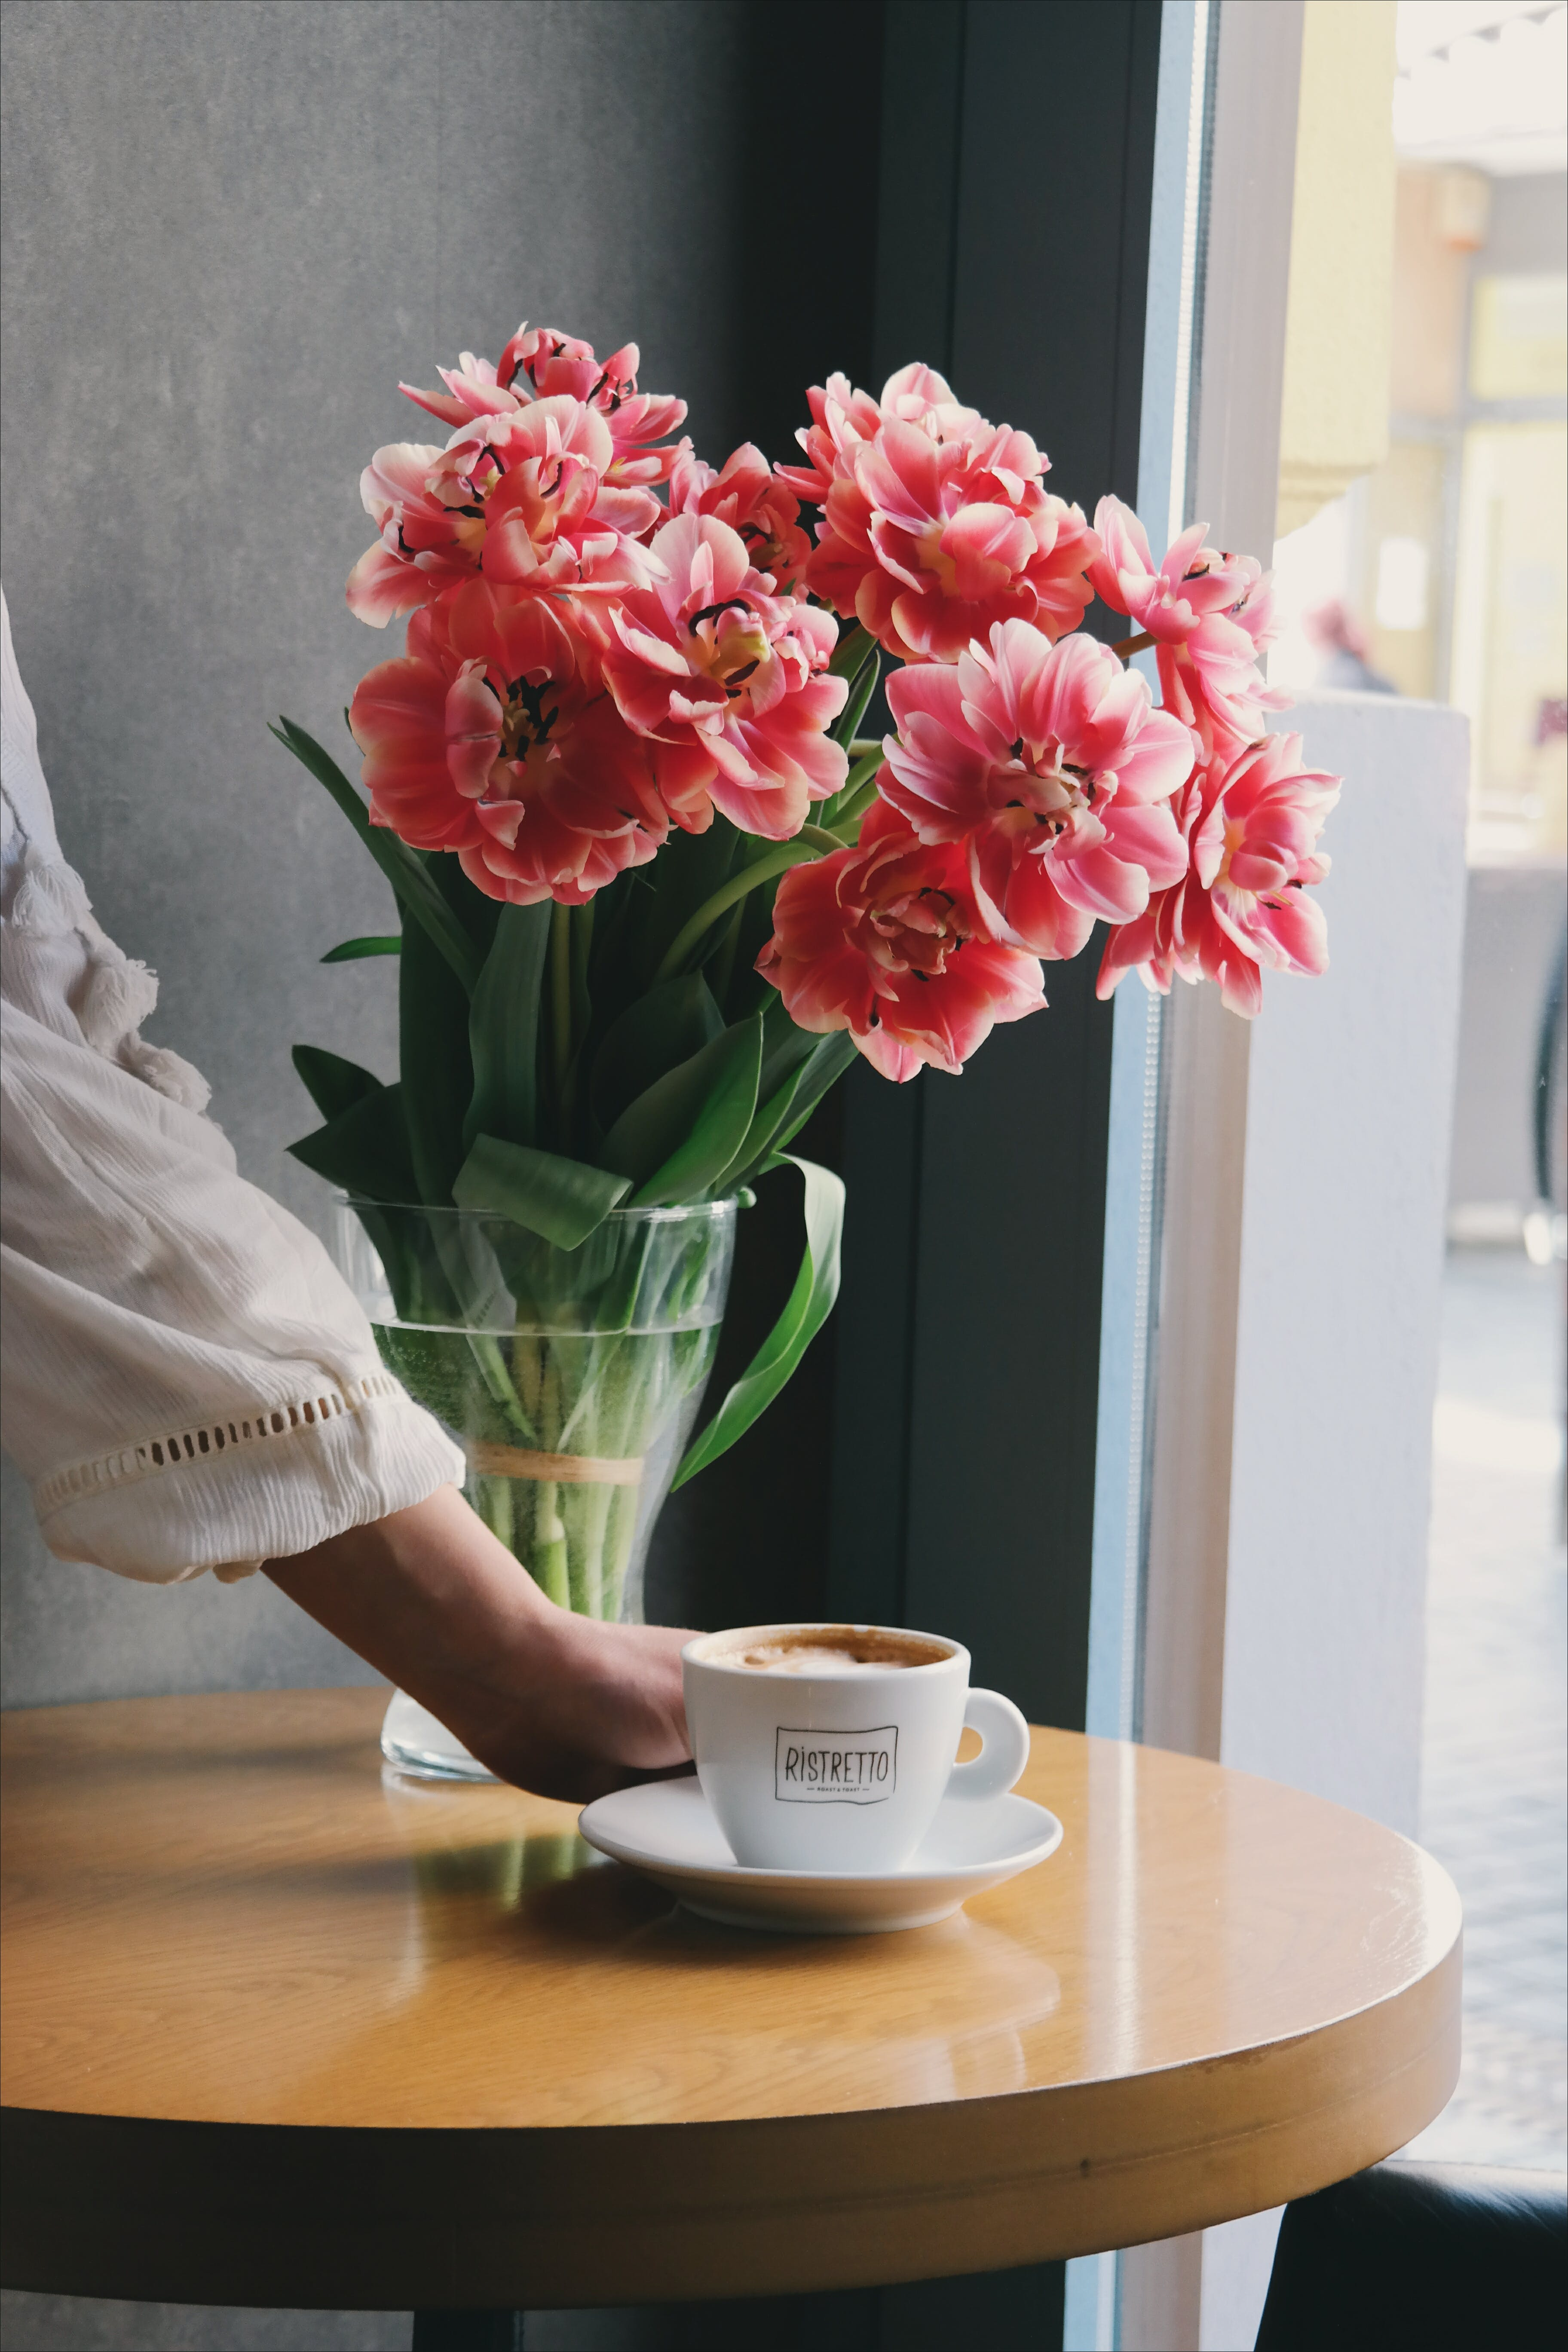 Person Placing Cup of Latte on White Saucer Near Pink Flowers in Bloom